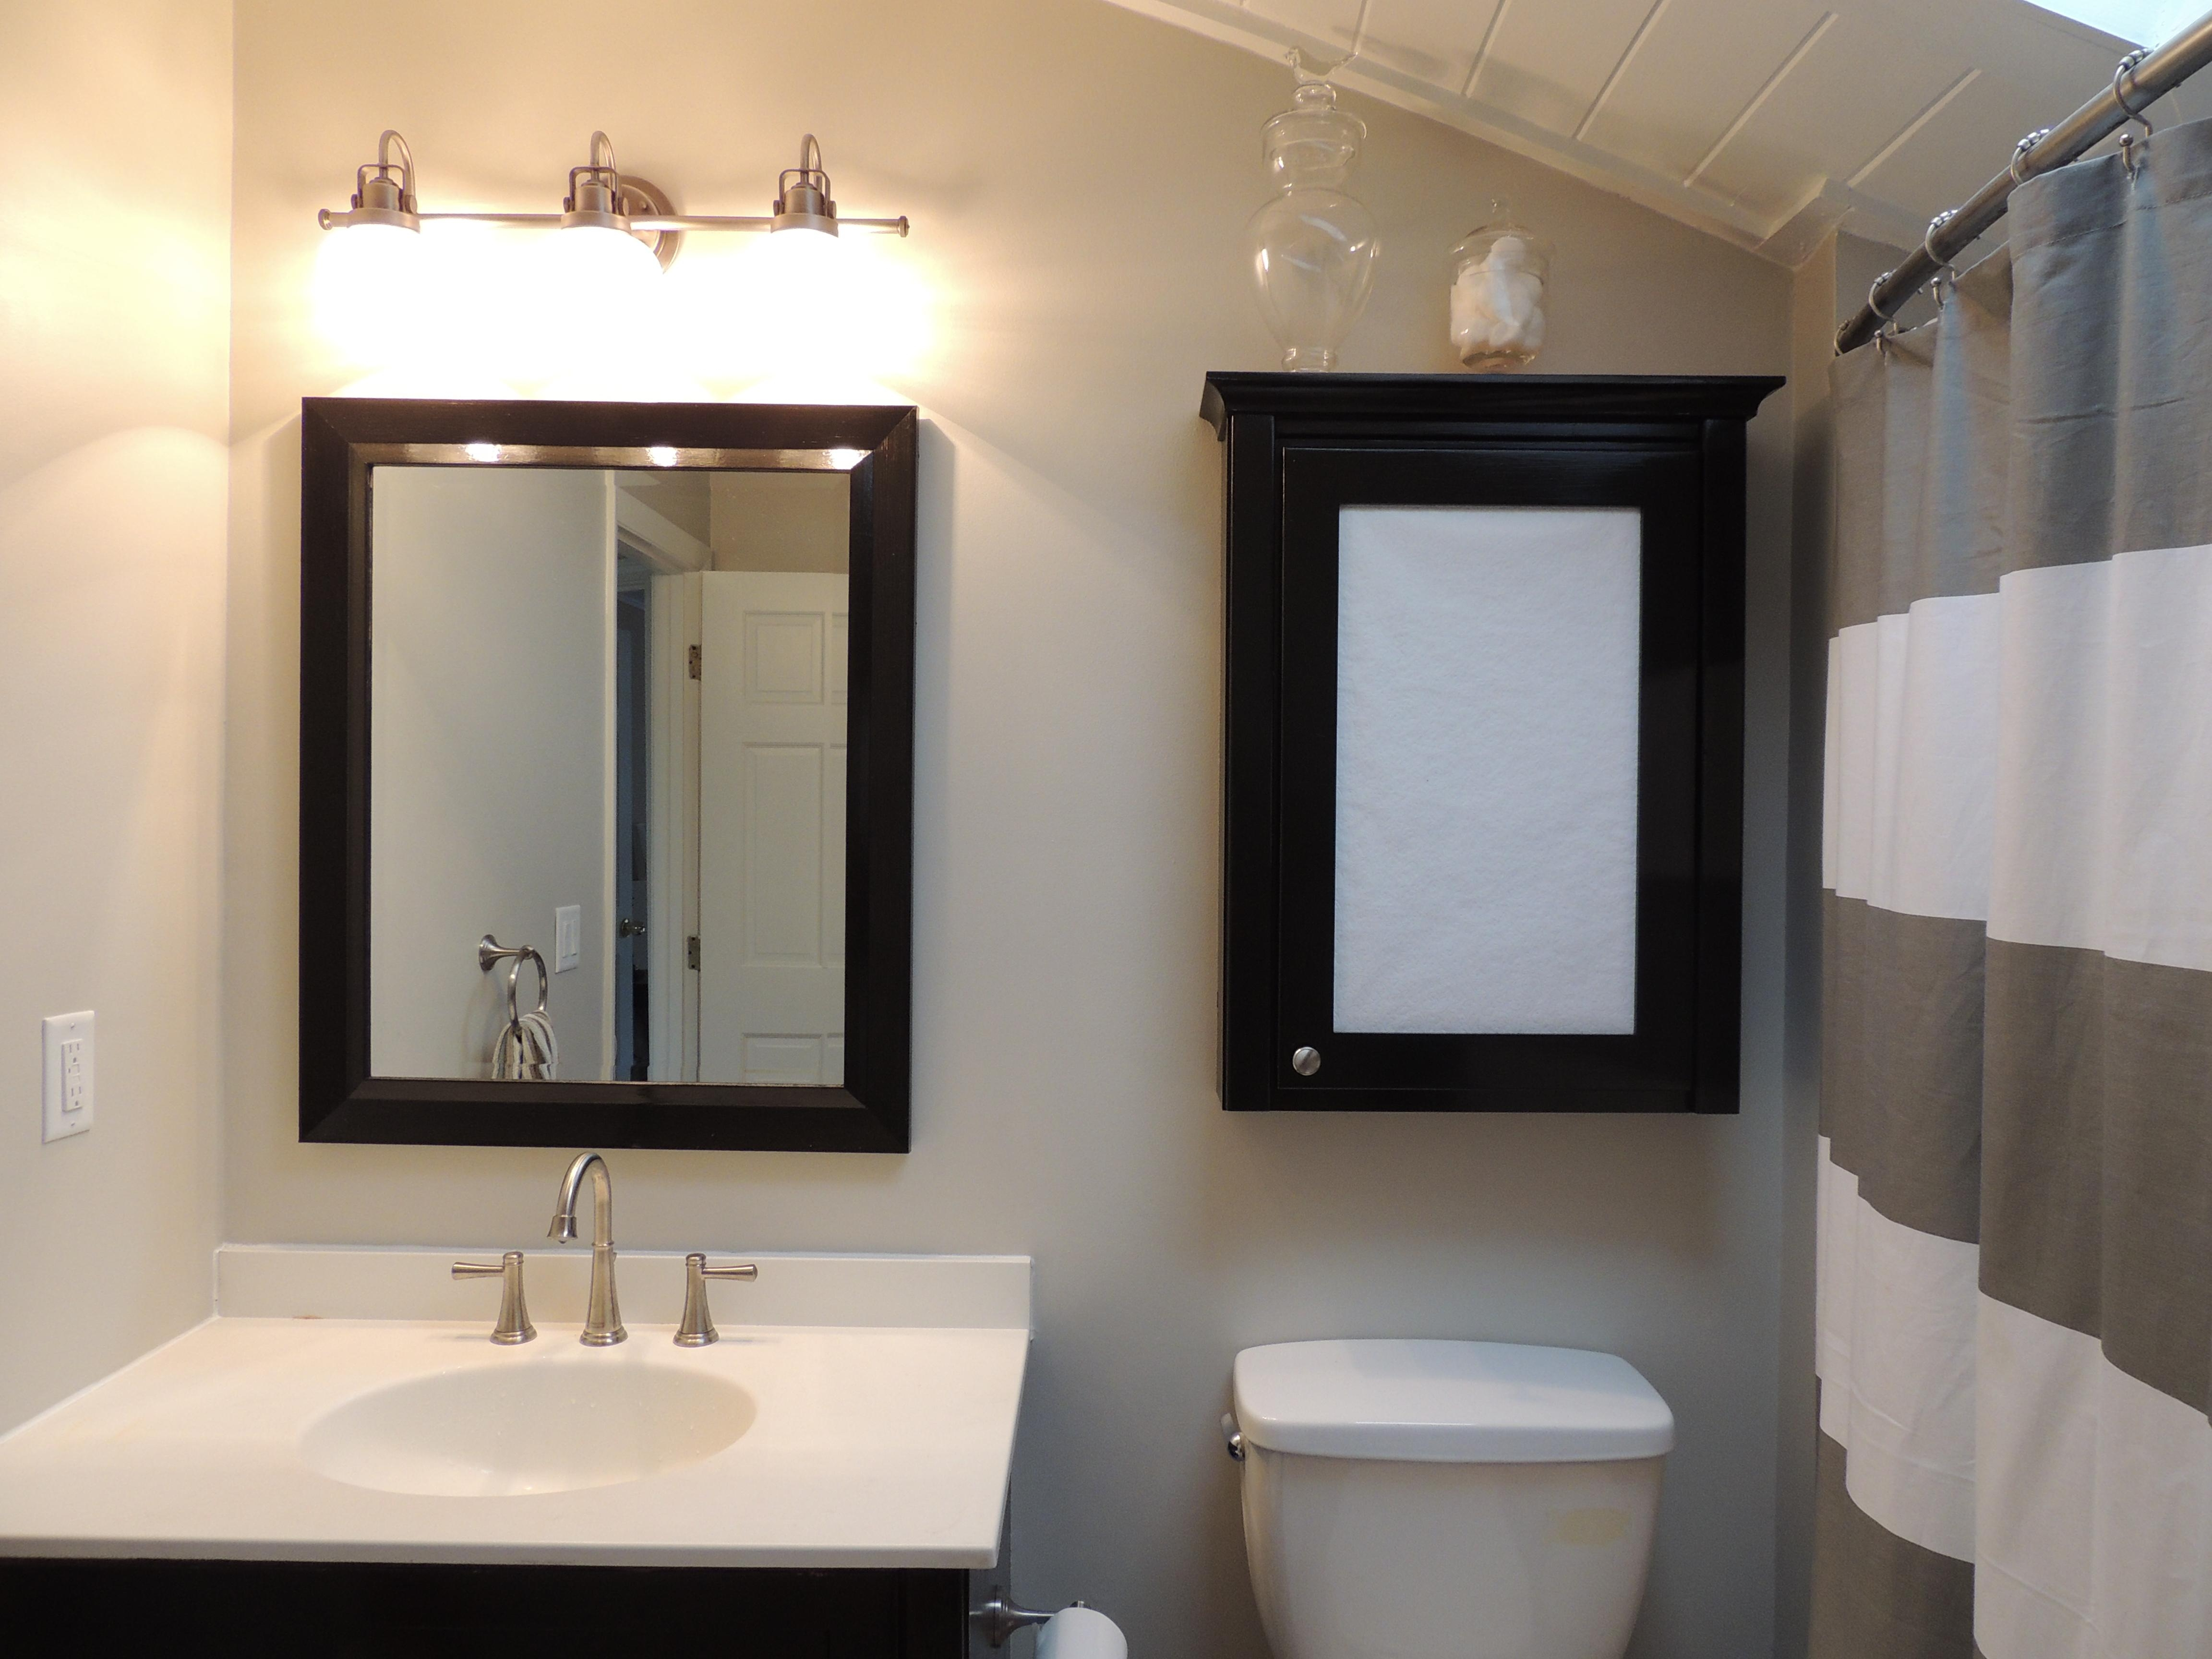 Bathroom: Inspiring Bathroom With Cool Lowes Bathroom Lighting In Bathroom Lighting And Mirrors (View 16 of 20)